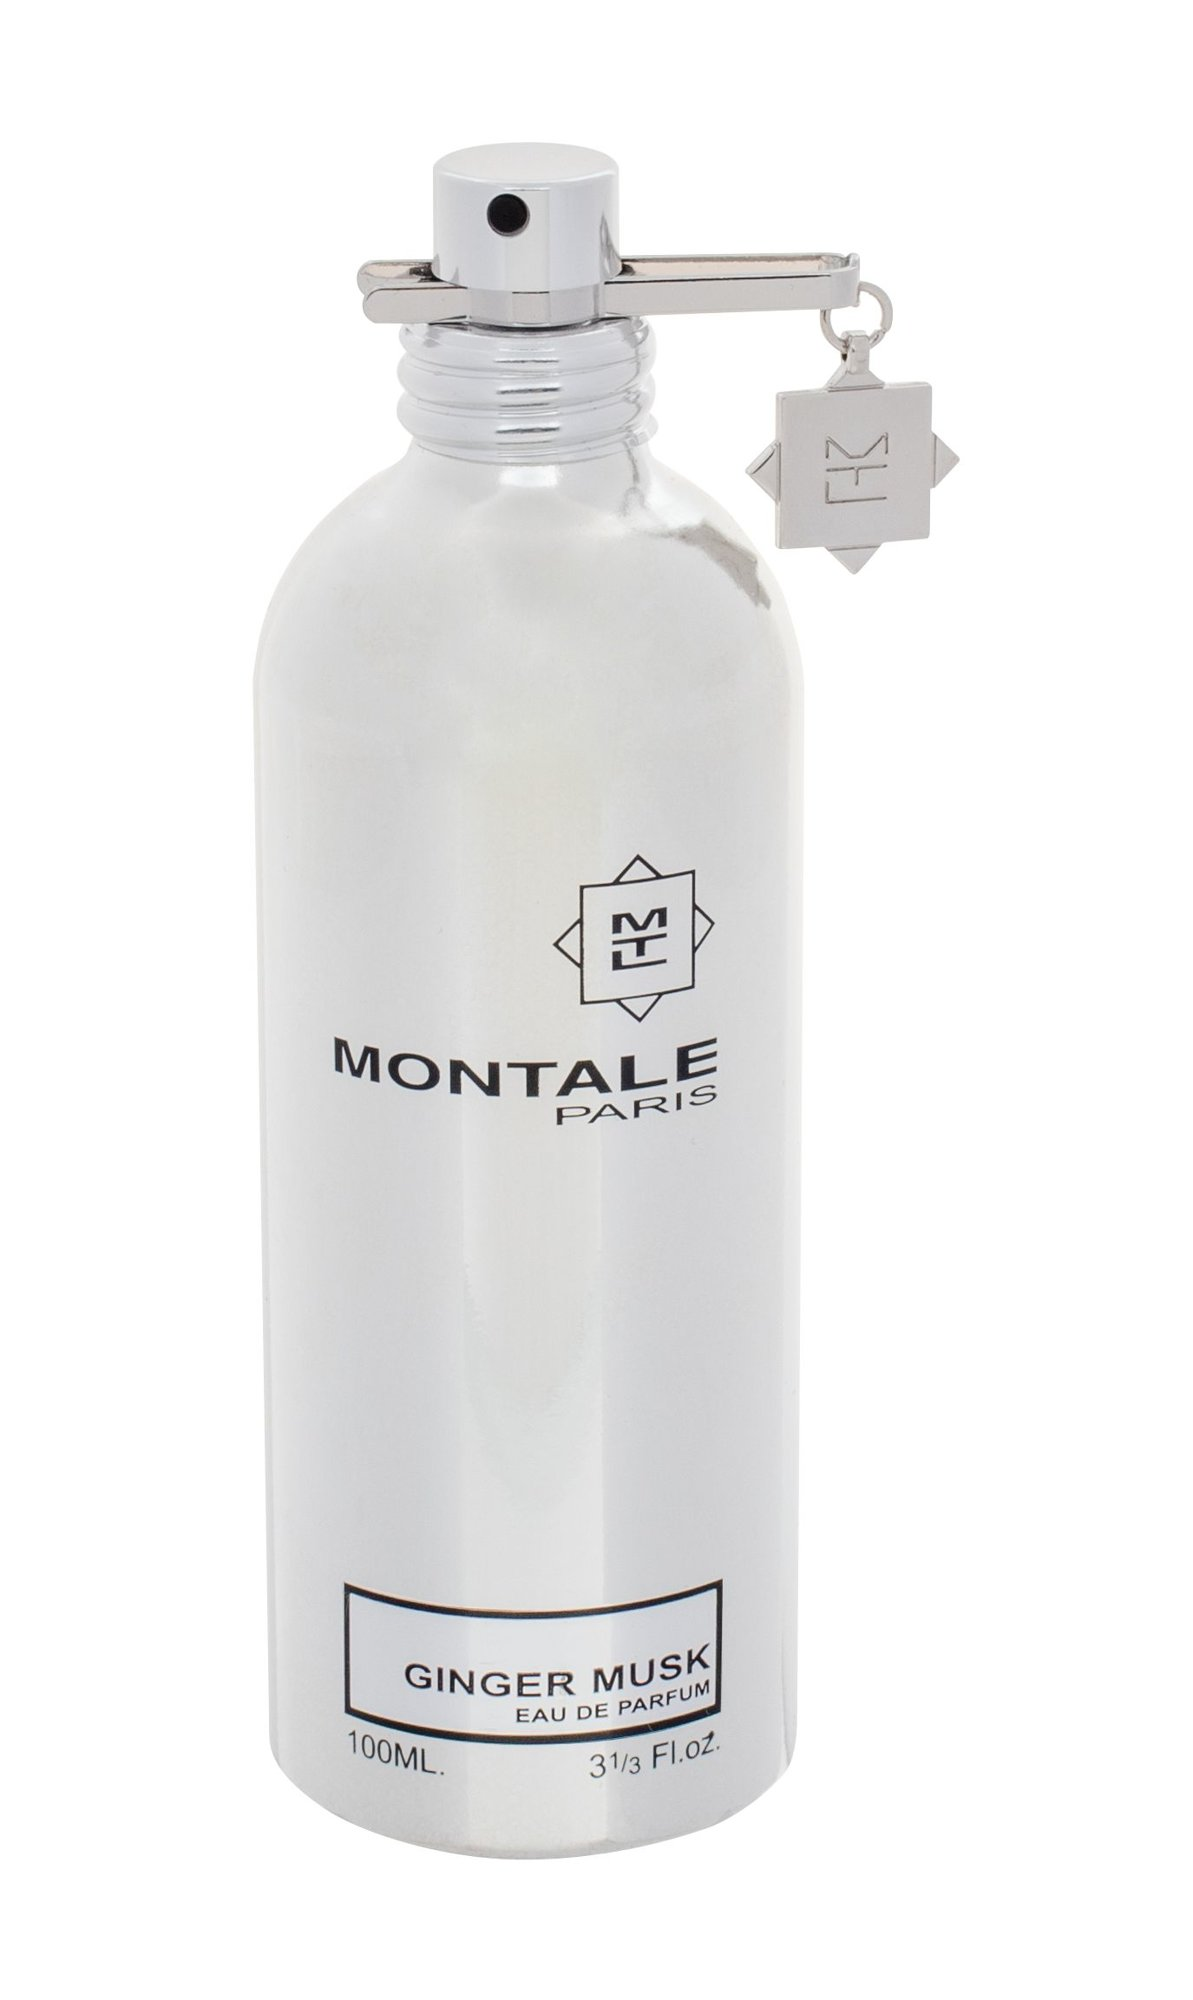 Montale Paris Ginger Musk EDP 100ml